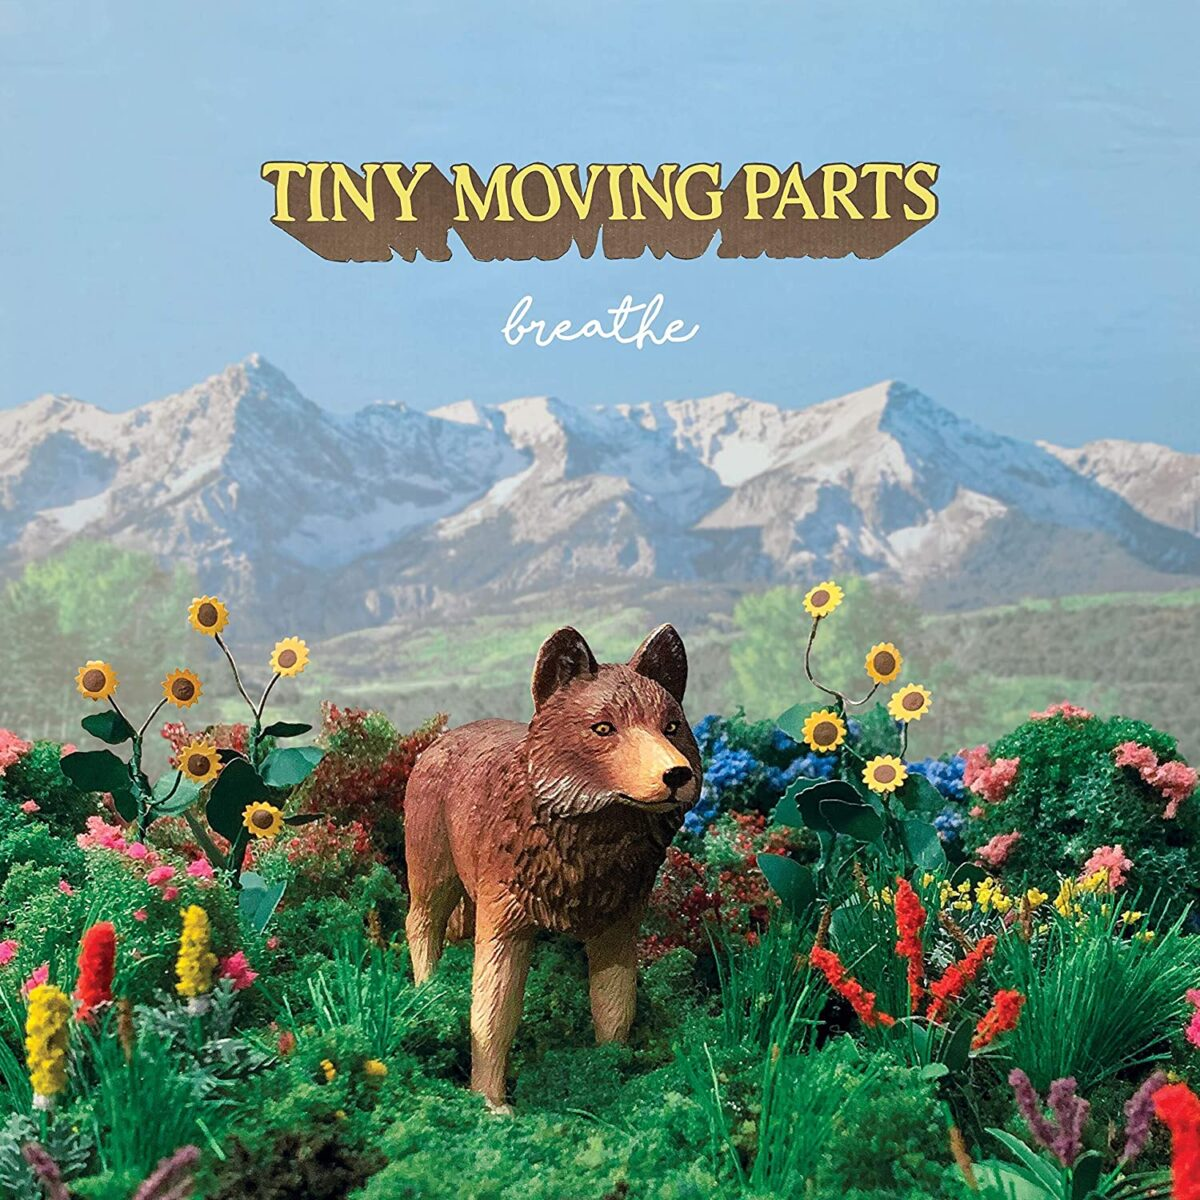 """""""breathe""""'s album cover depicts the painted statue of a wolf standing in the middle of nature, surrounded by red and yellow flowers. There are mountains and a big blue sky behind it and """"Tiny Moving Parts"""" is in yellow with brown outlines, in all caps."""